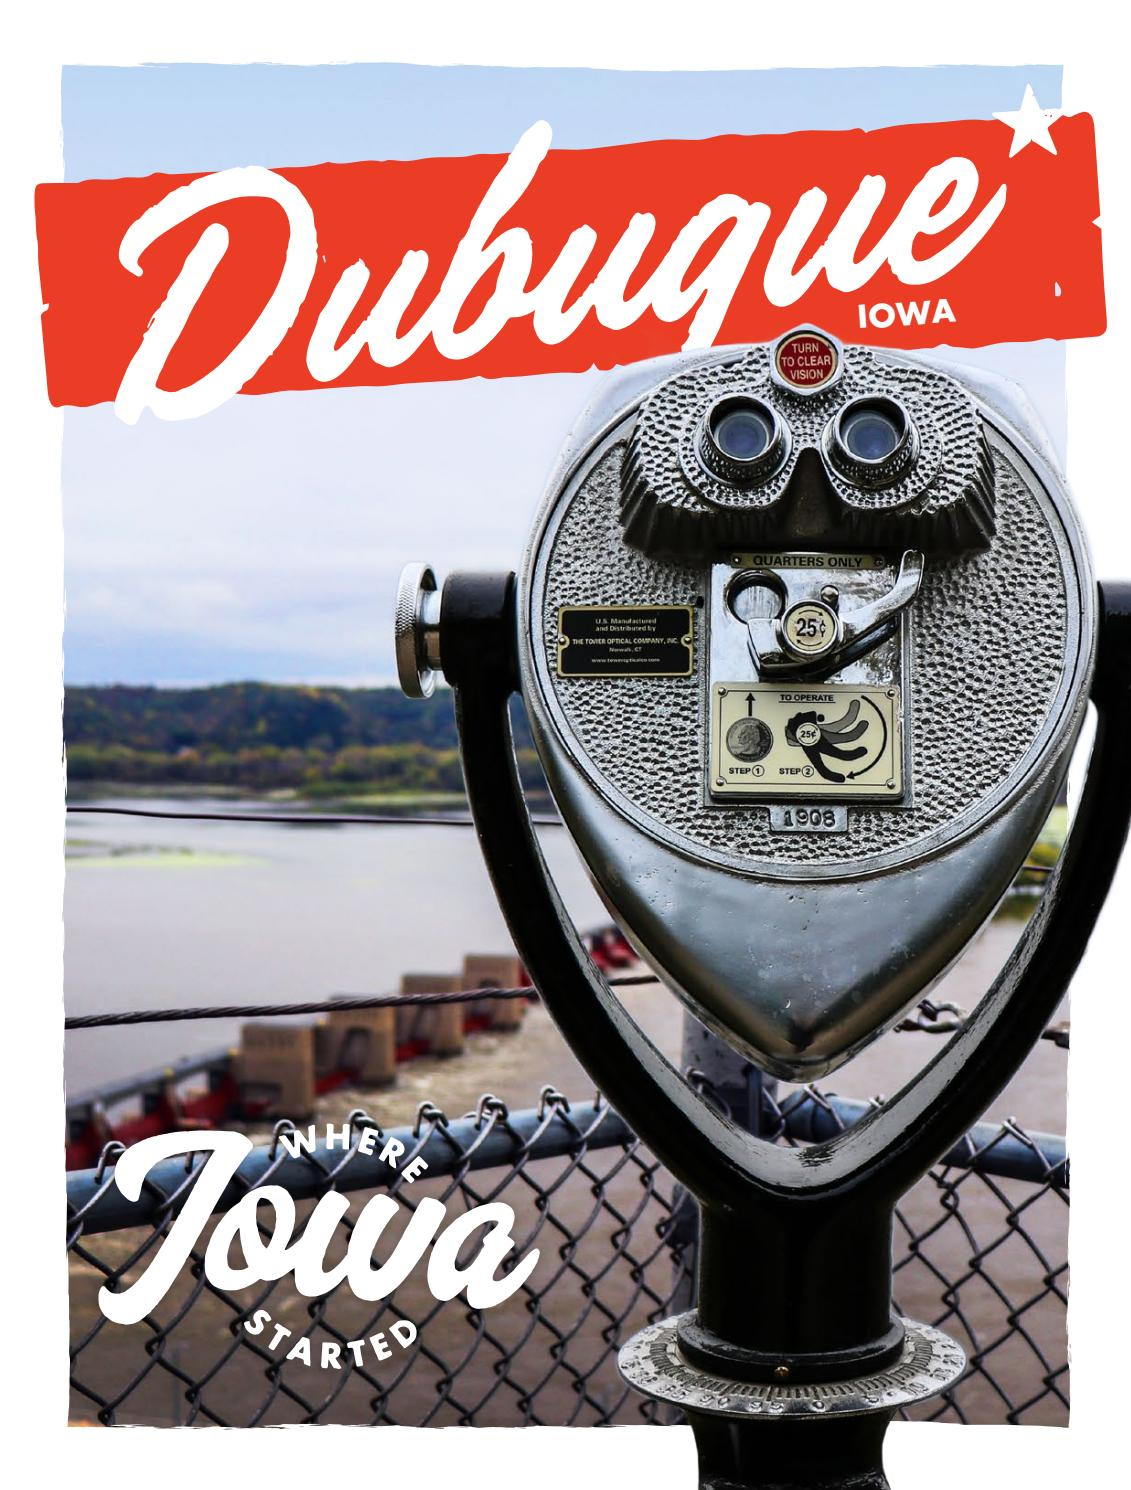 0f7497f60f77 Dubuque Travel Guide by Travel Dubuque - issuu